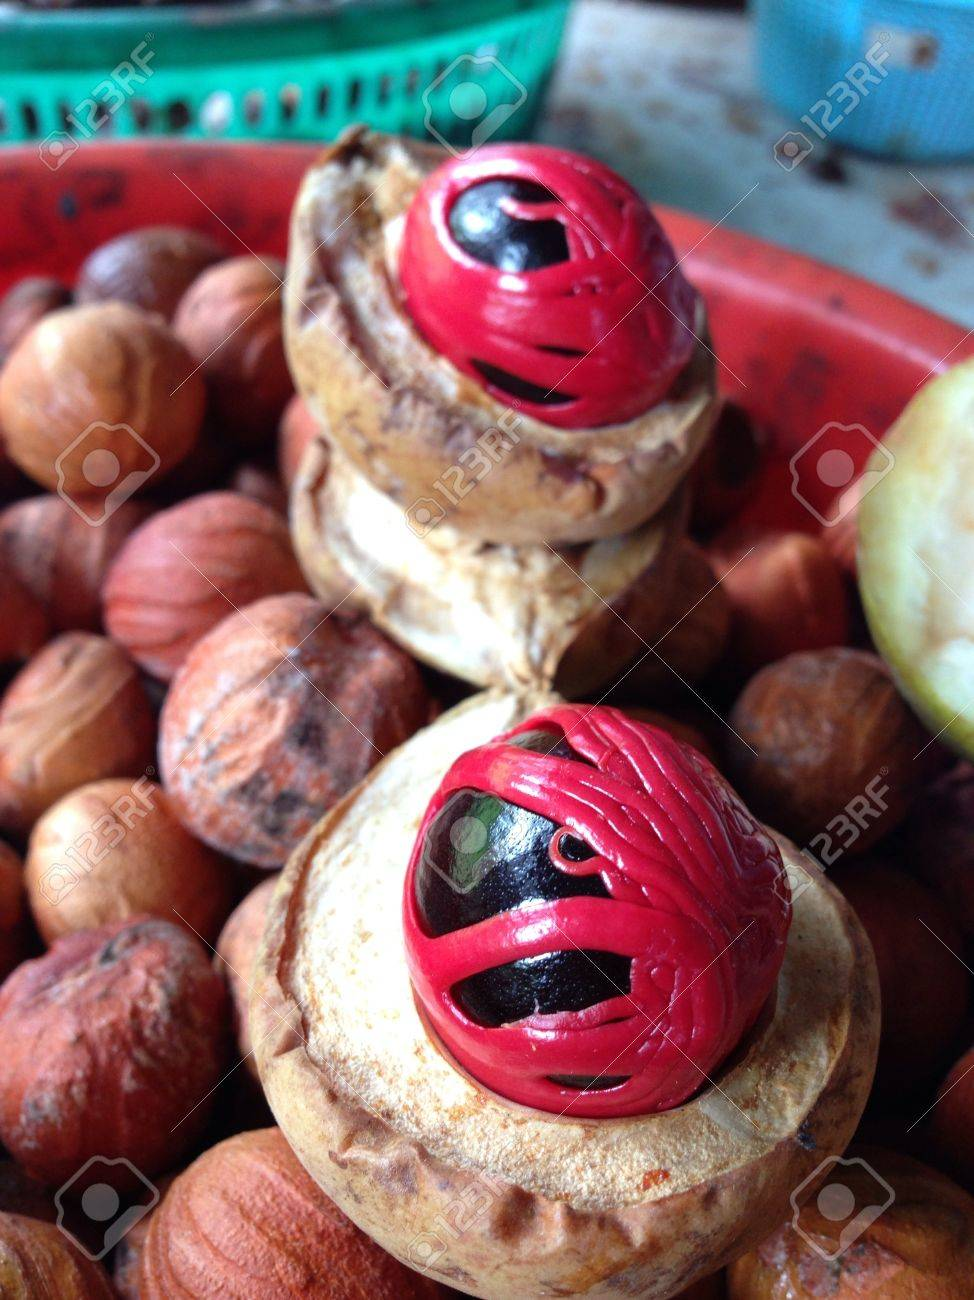 Upclose of a halved nutmeg fruit known for its many values and